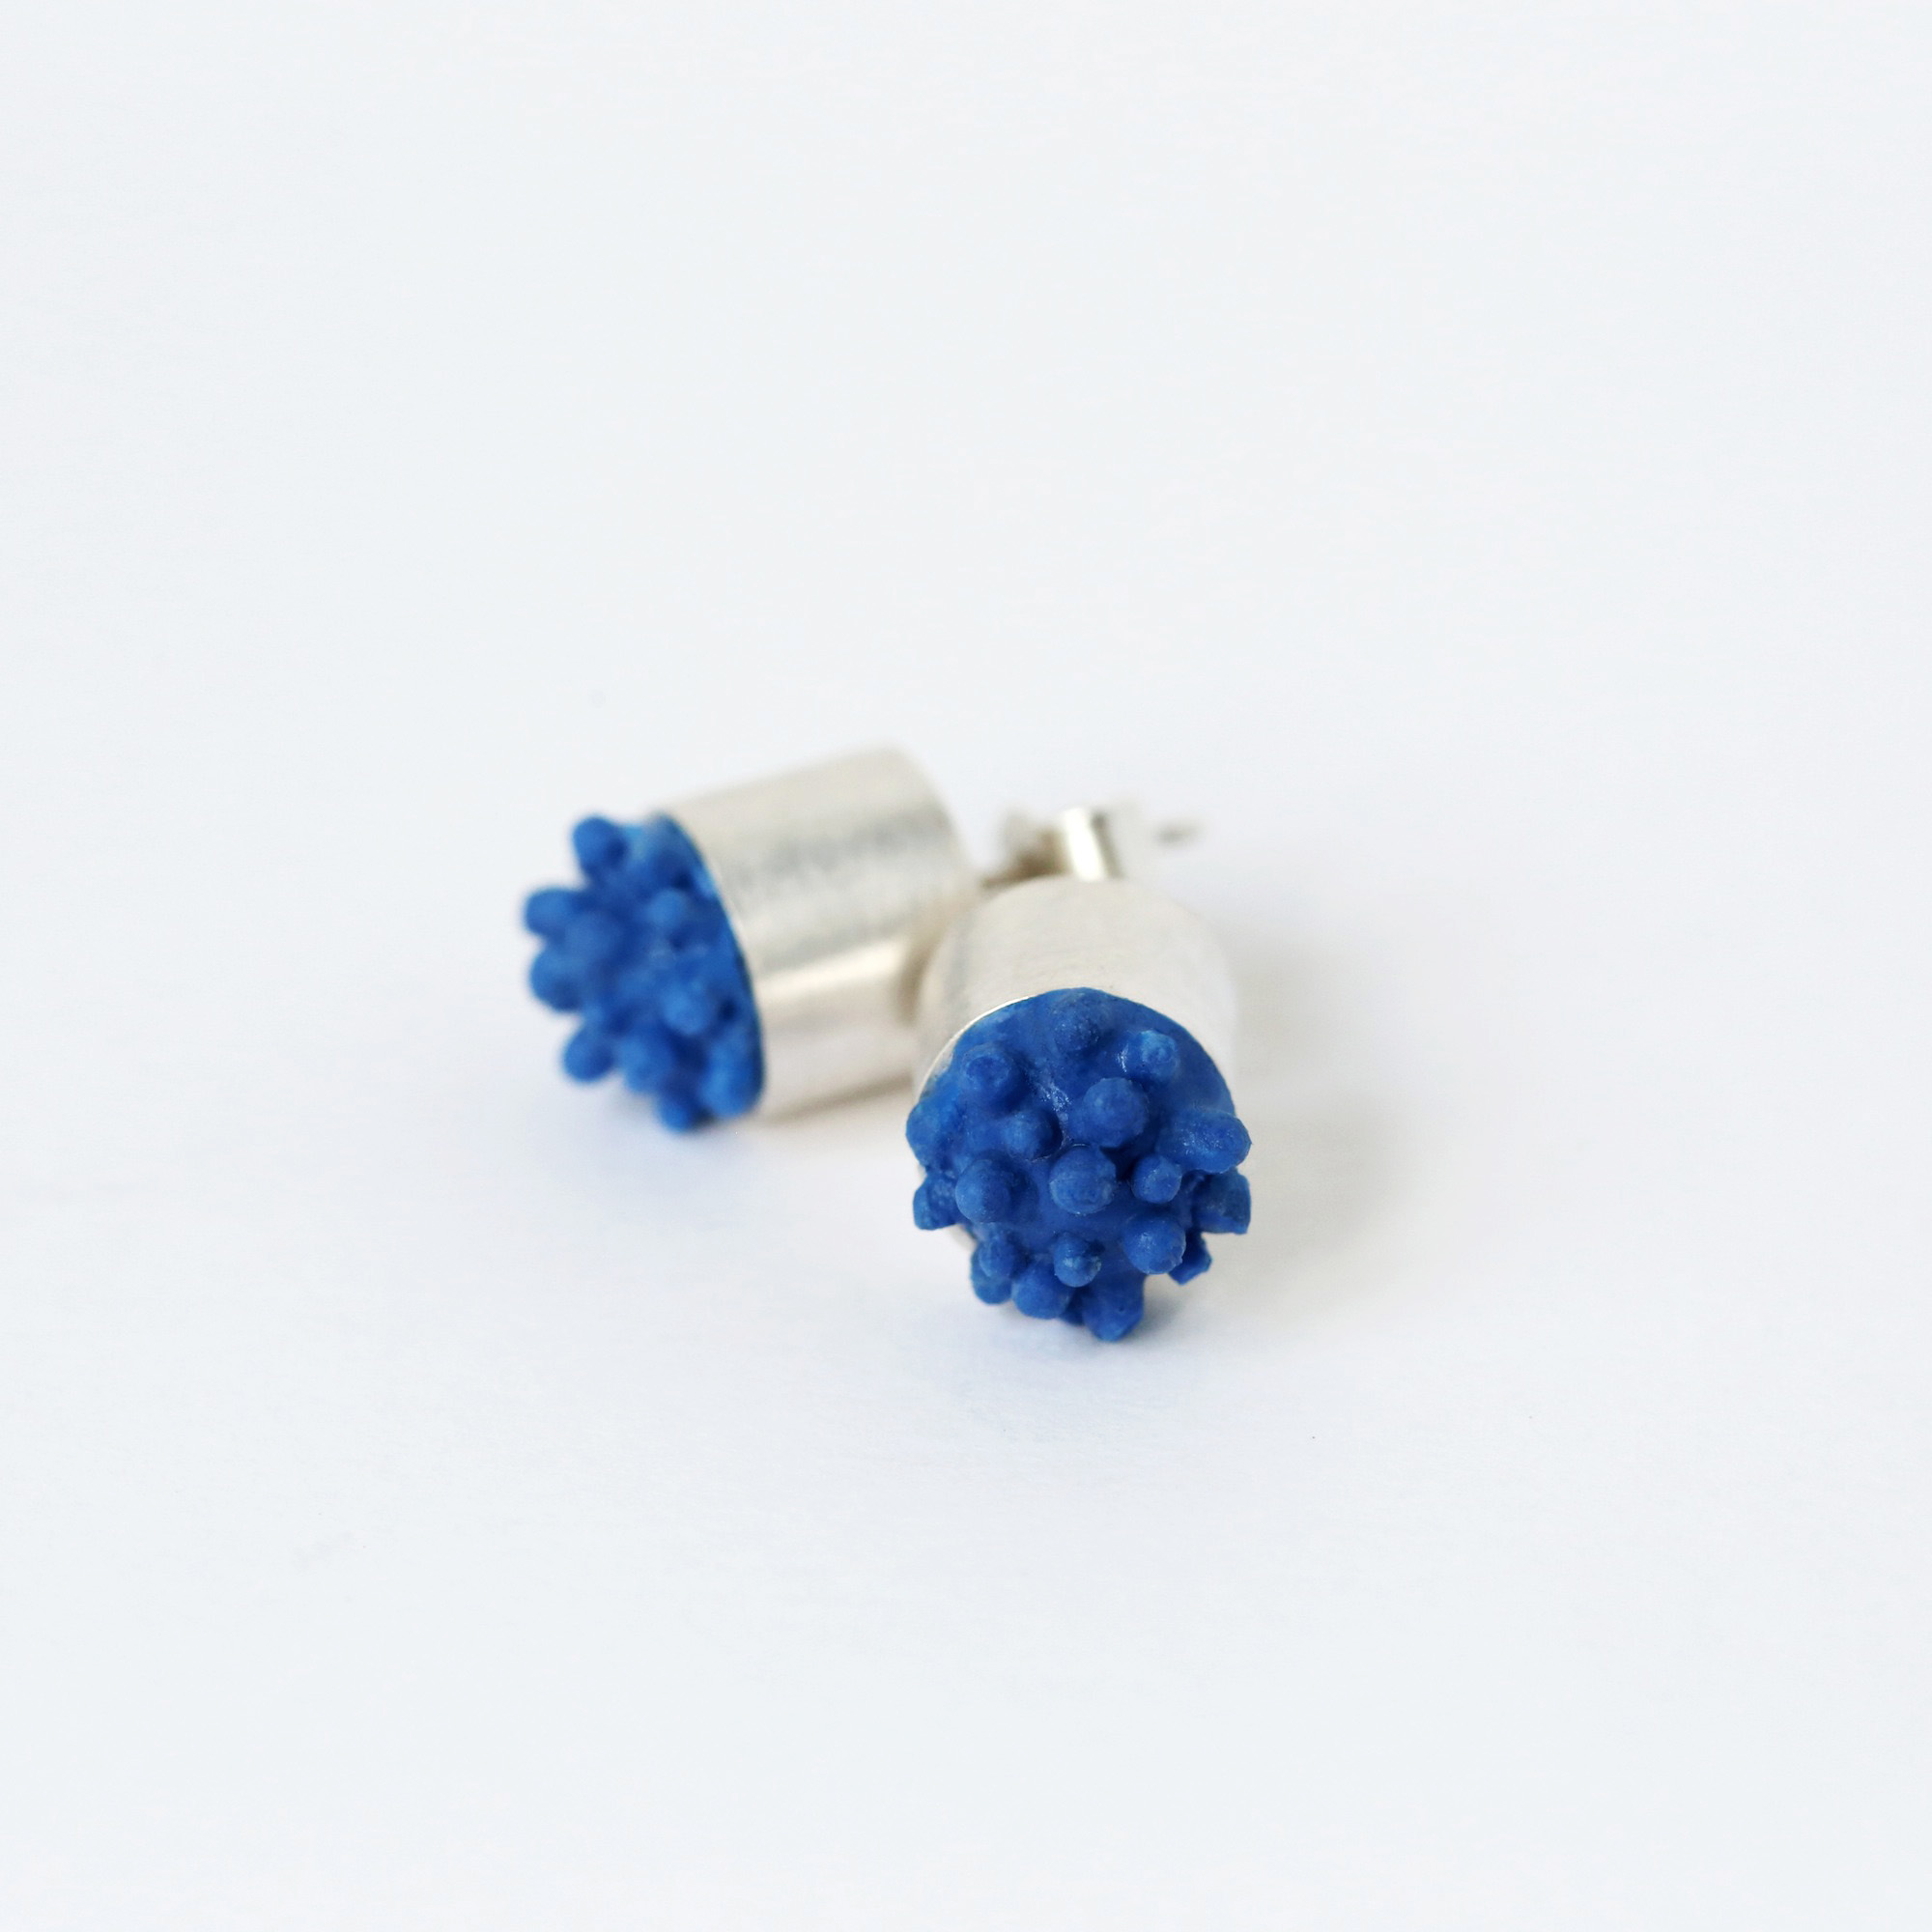 dovile b. nautilus hard soft silicone silver blue studs